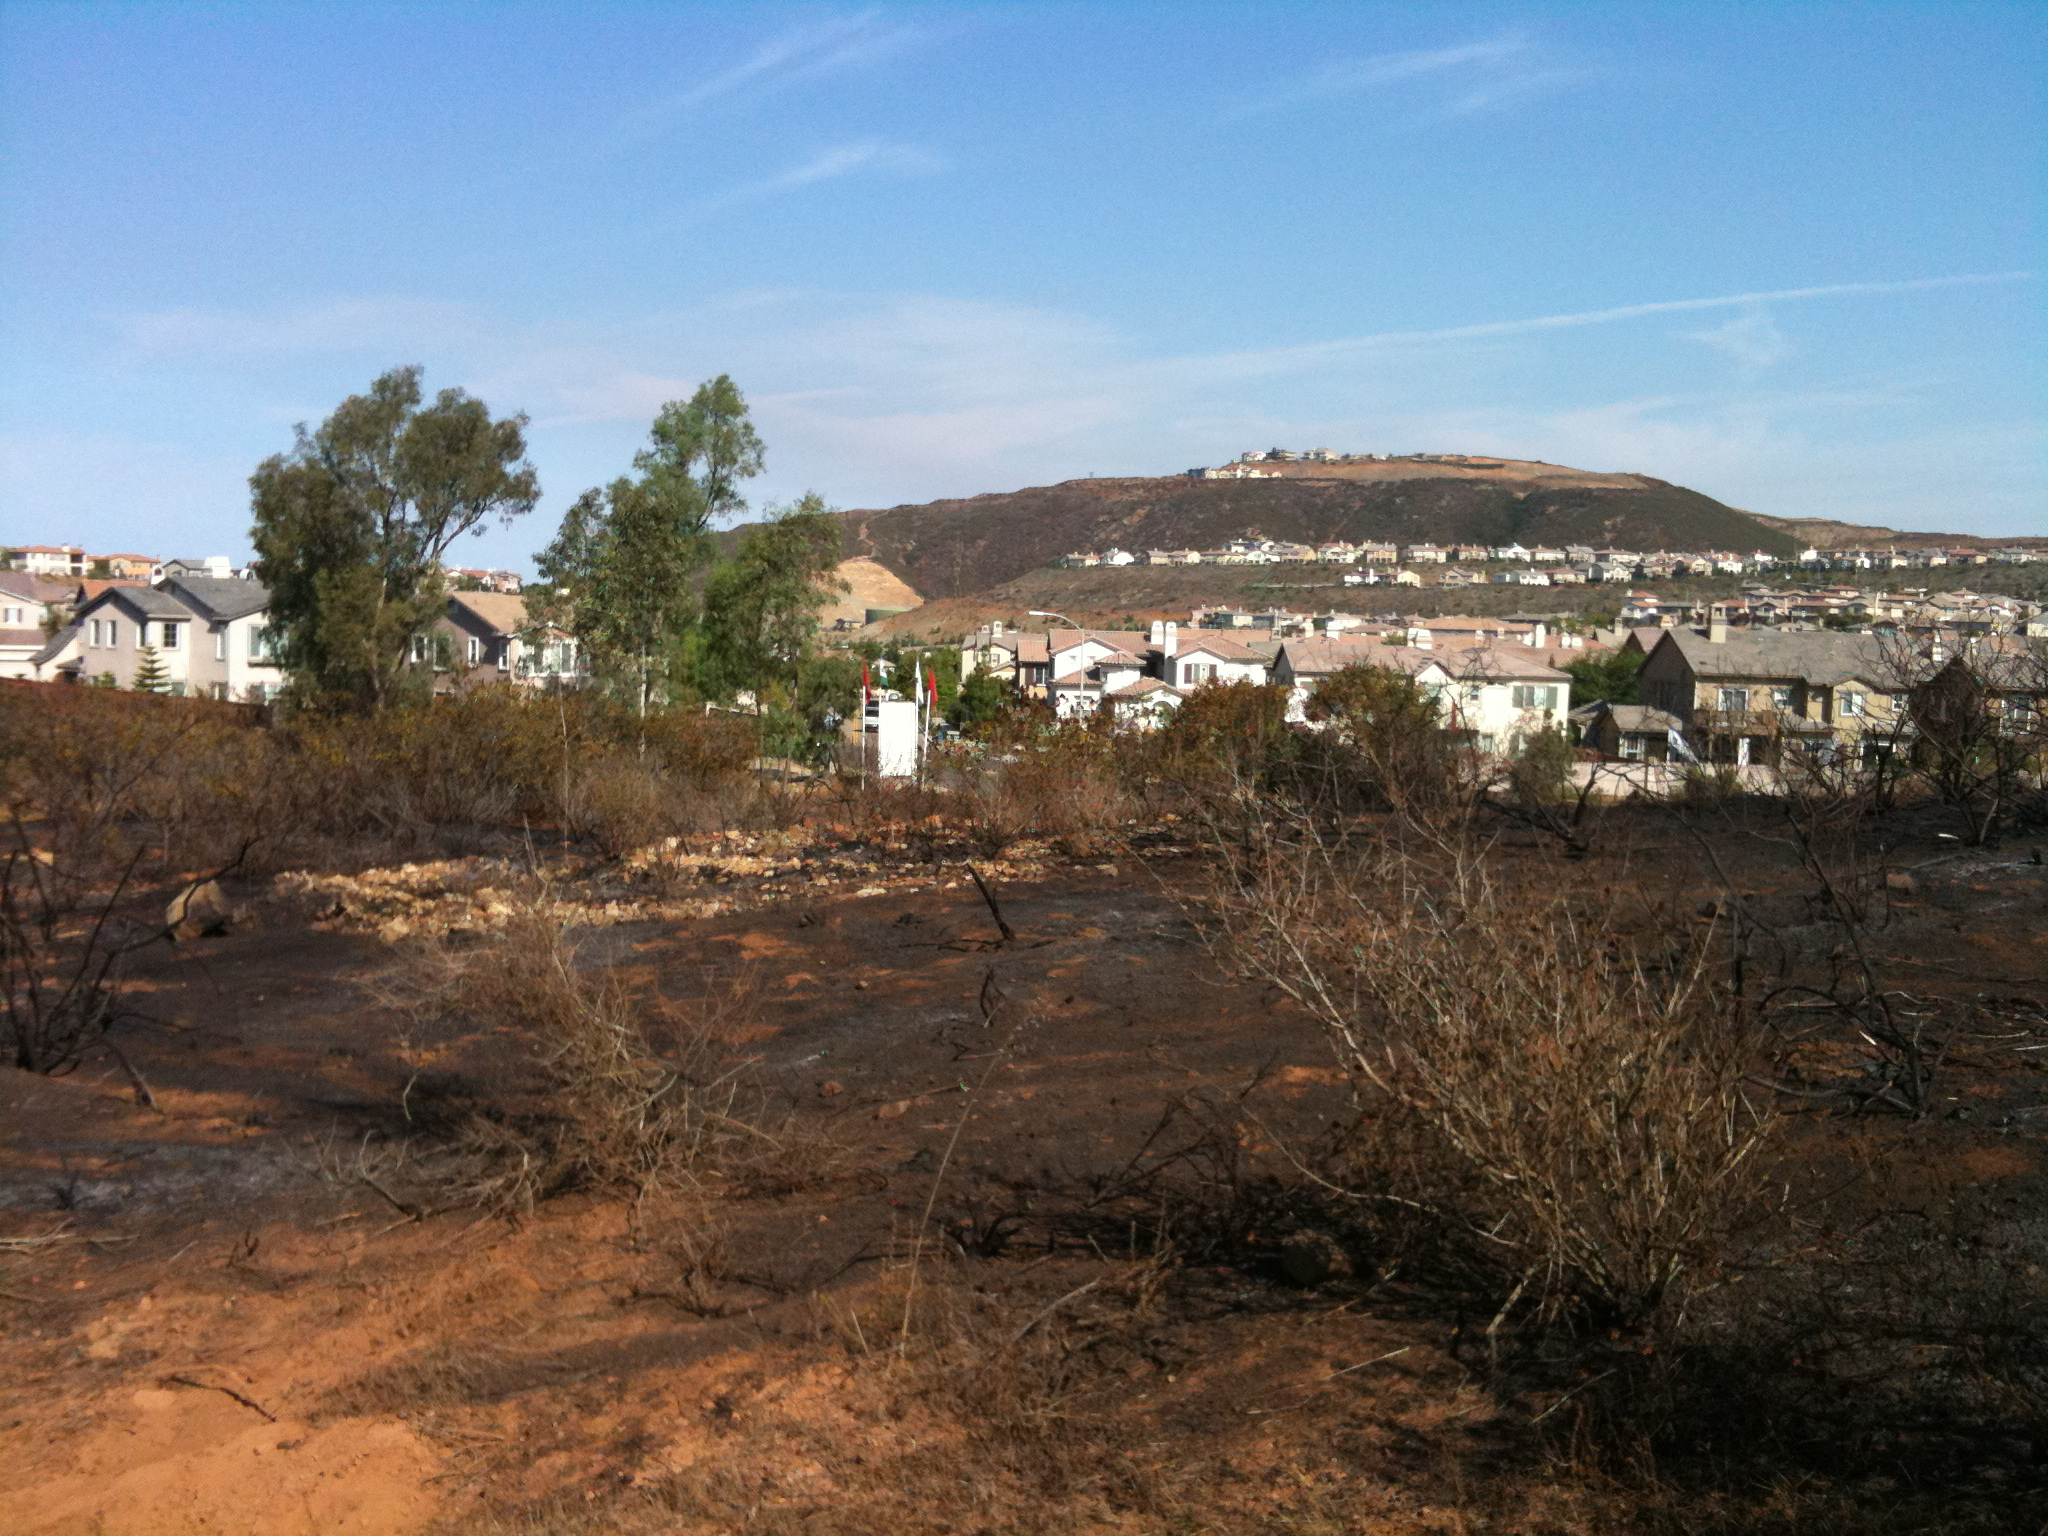 Looking North at Fire Location